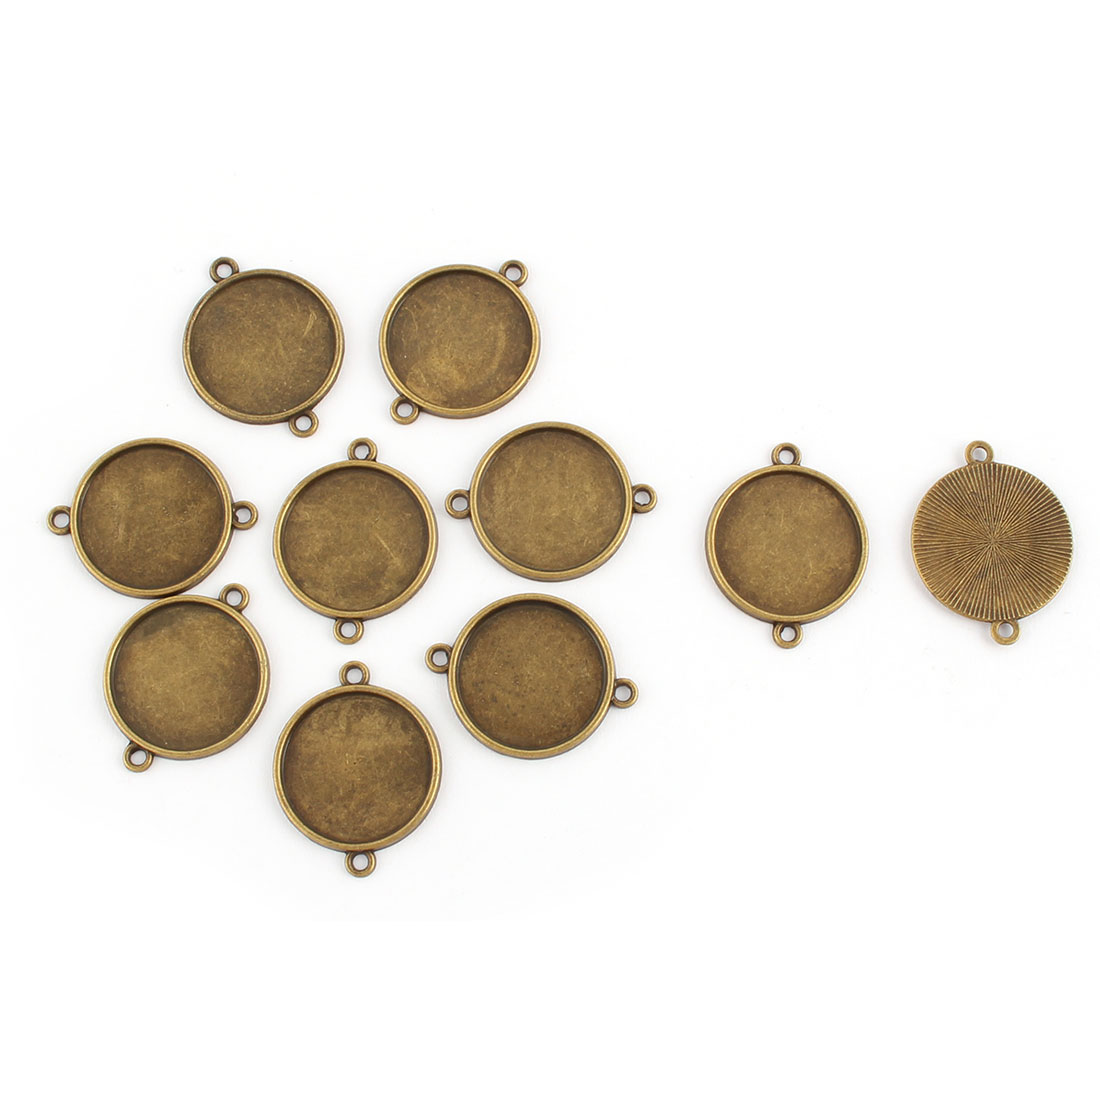 Jewelry DIY Copper Alloy Double Holes Retro Style Cameos Bezel Pendant Trays Adornment Bronze Tone 20mm Inner Dia 10pcs